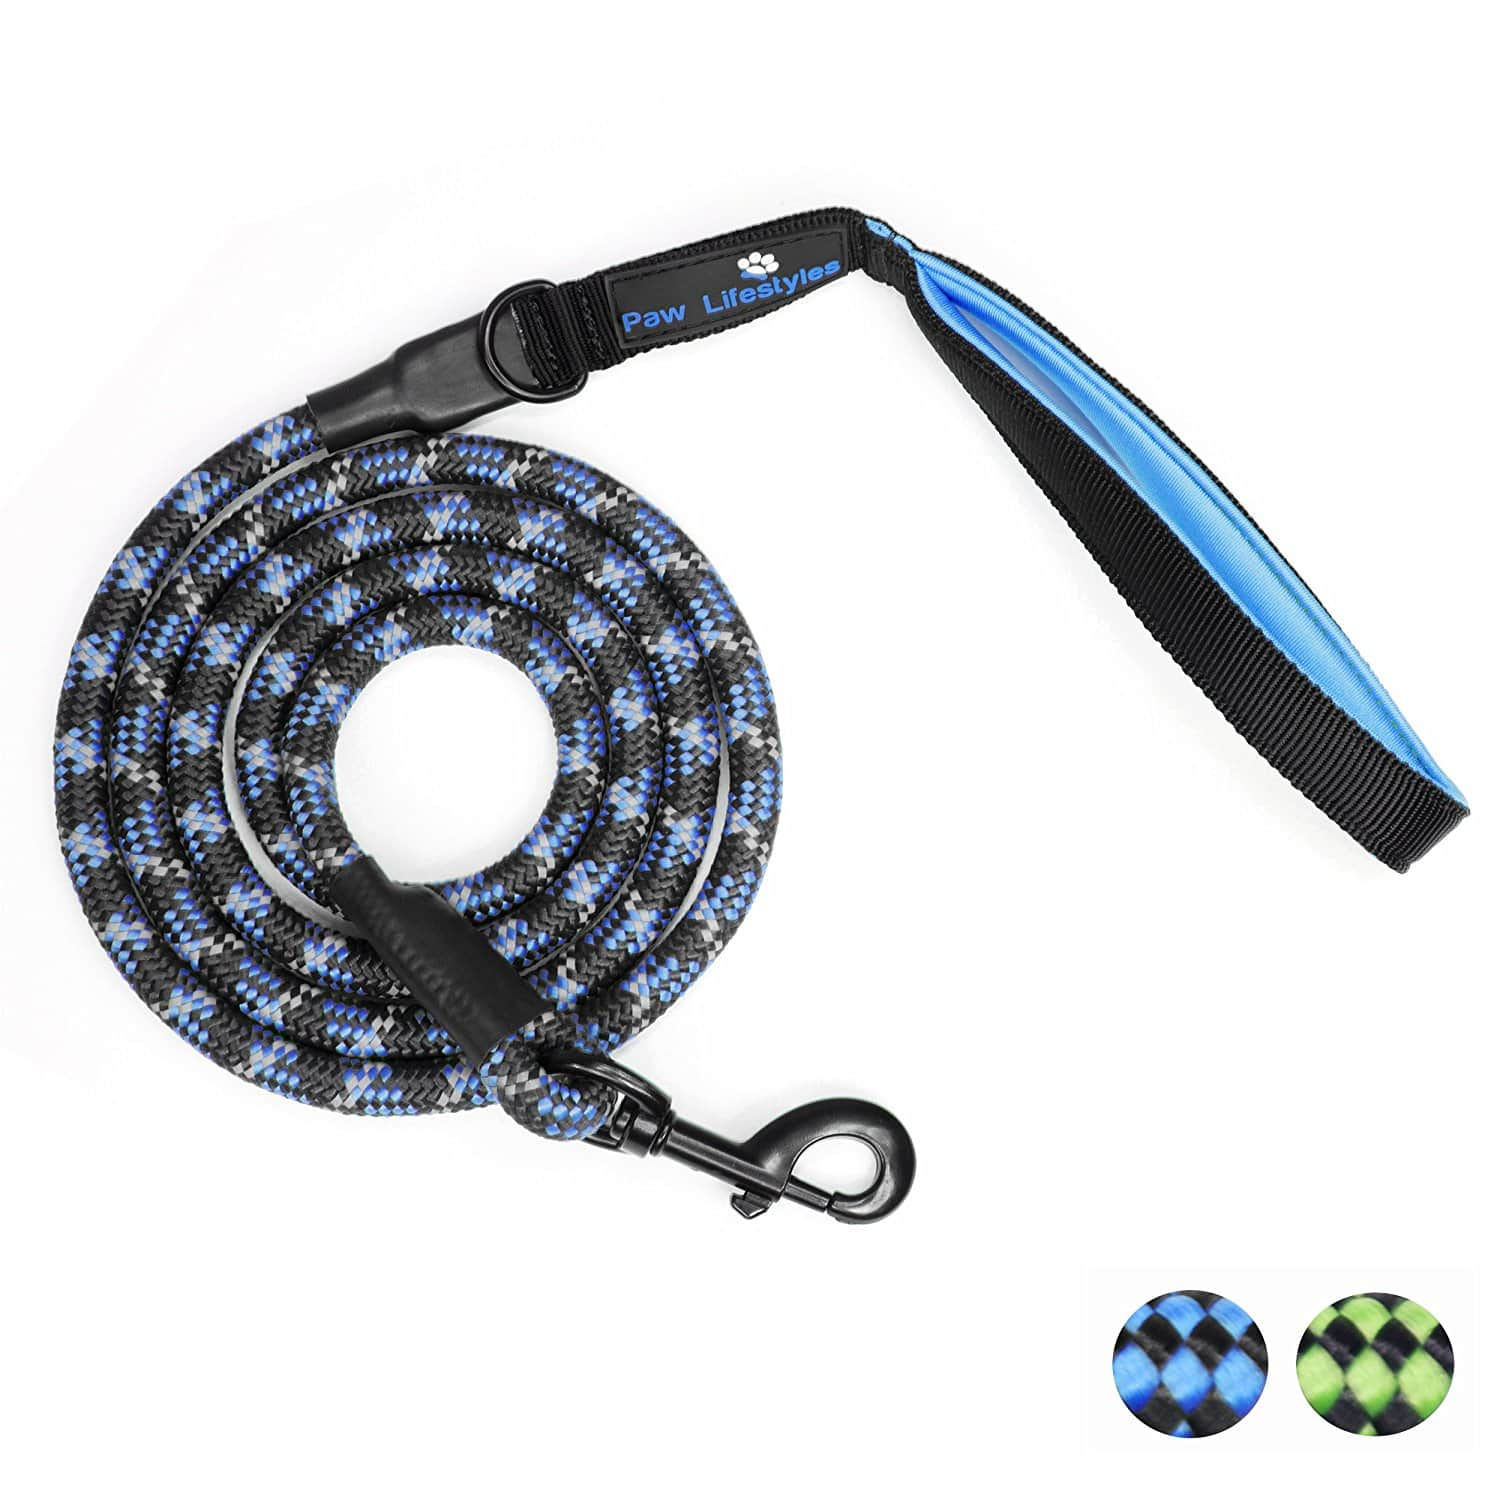 6' Heavy Duty Rope Dog Leash with Reflective Threading $1.99 + Free Prime Shipping